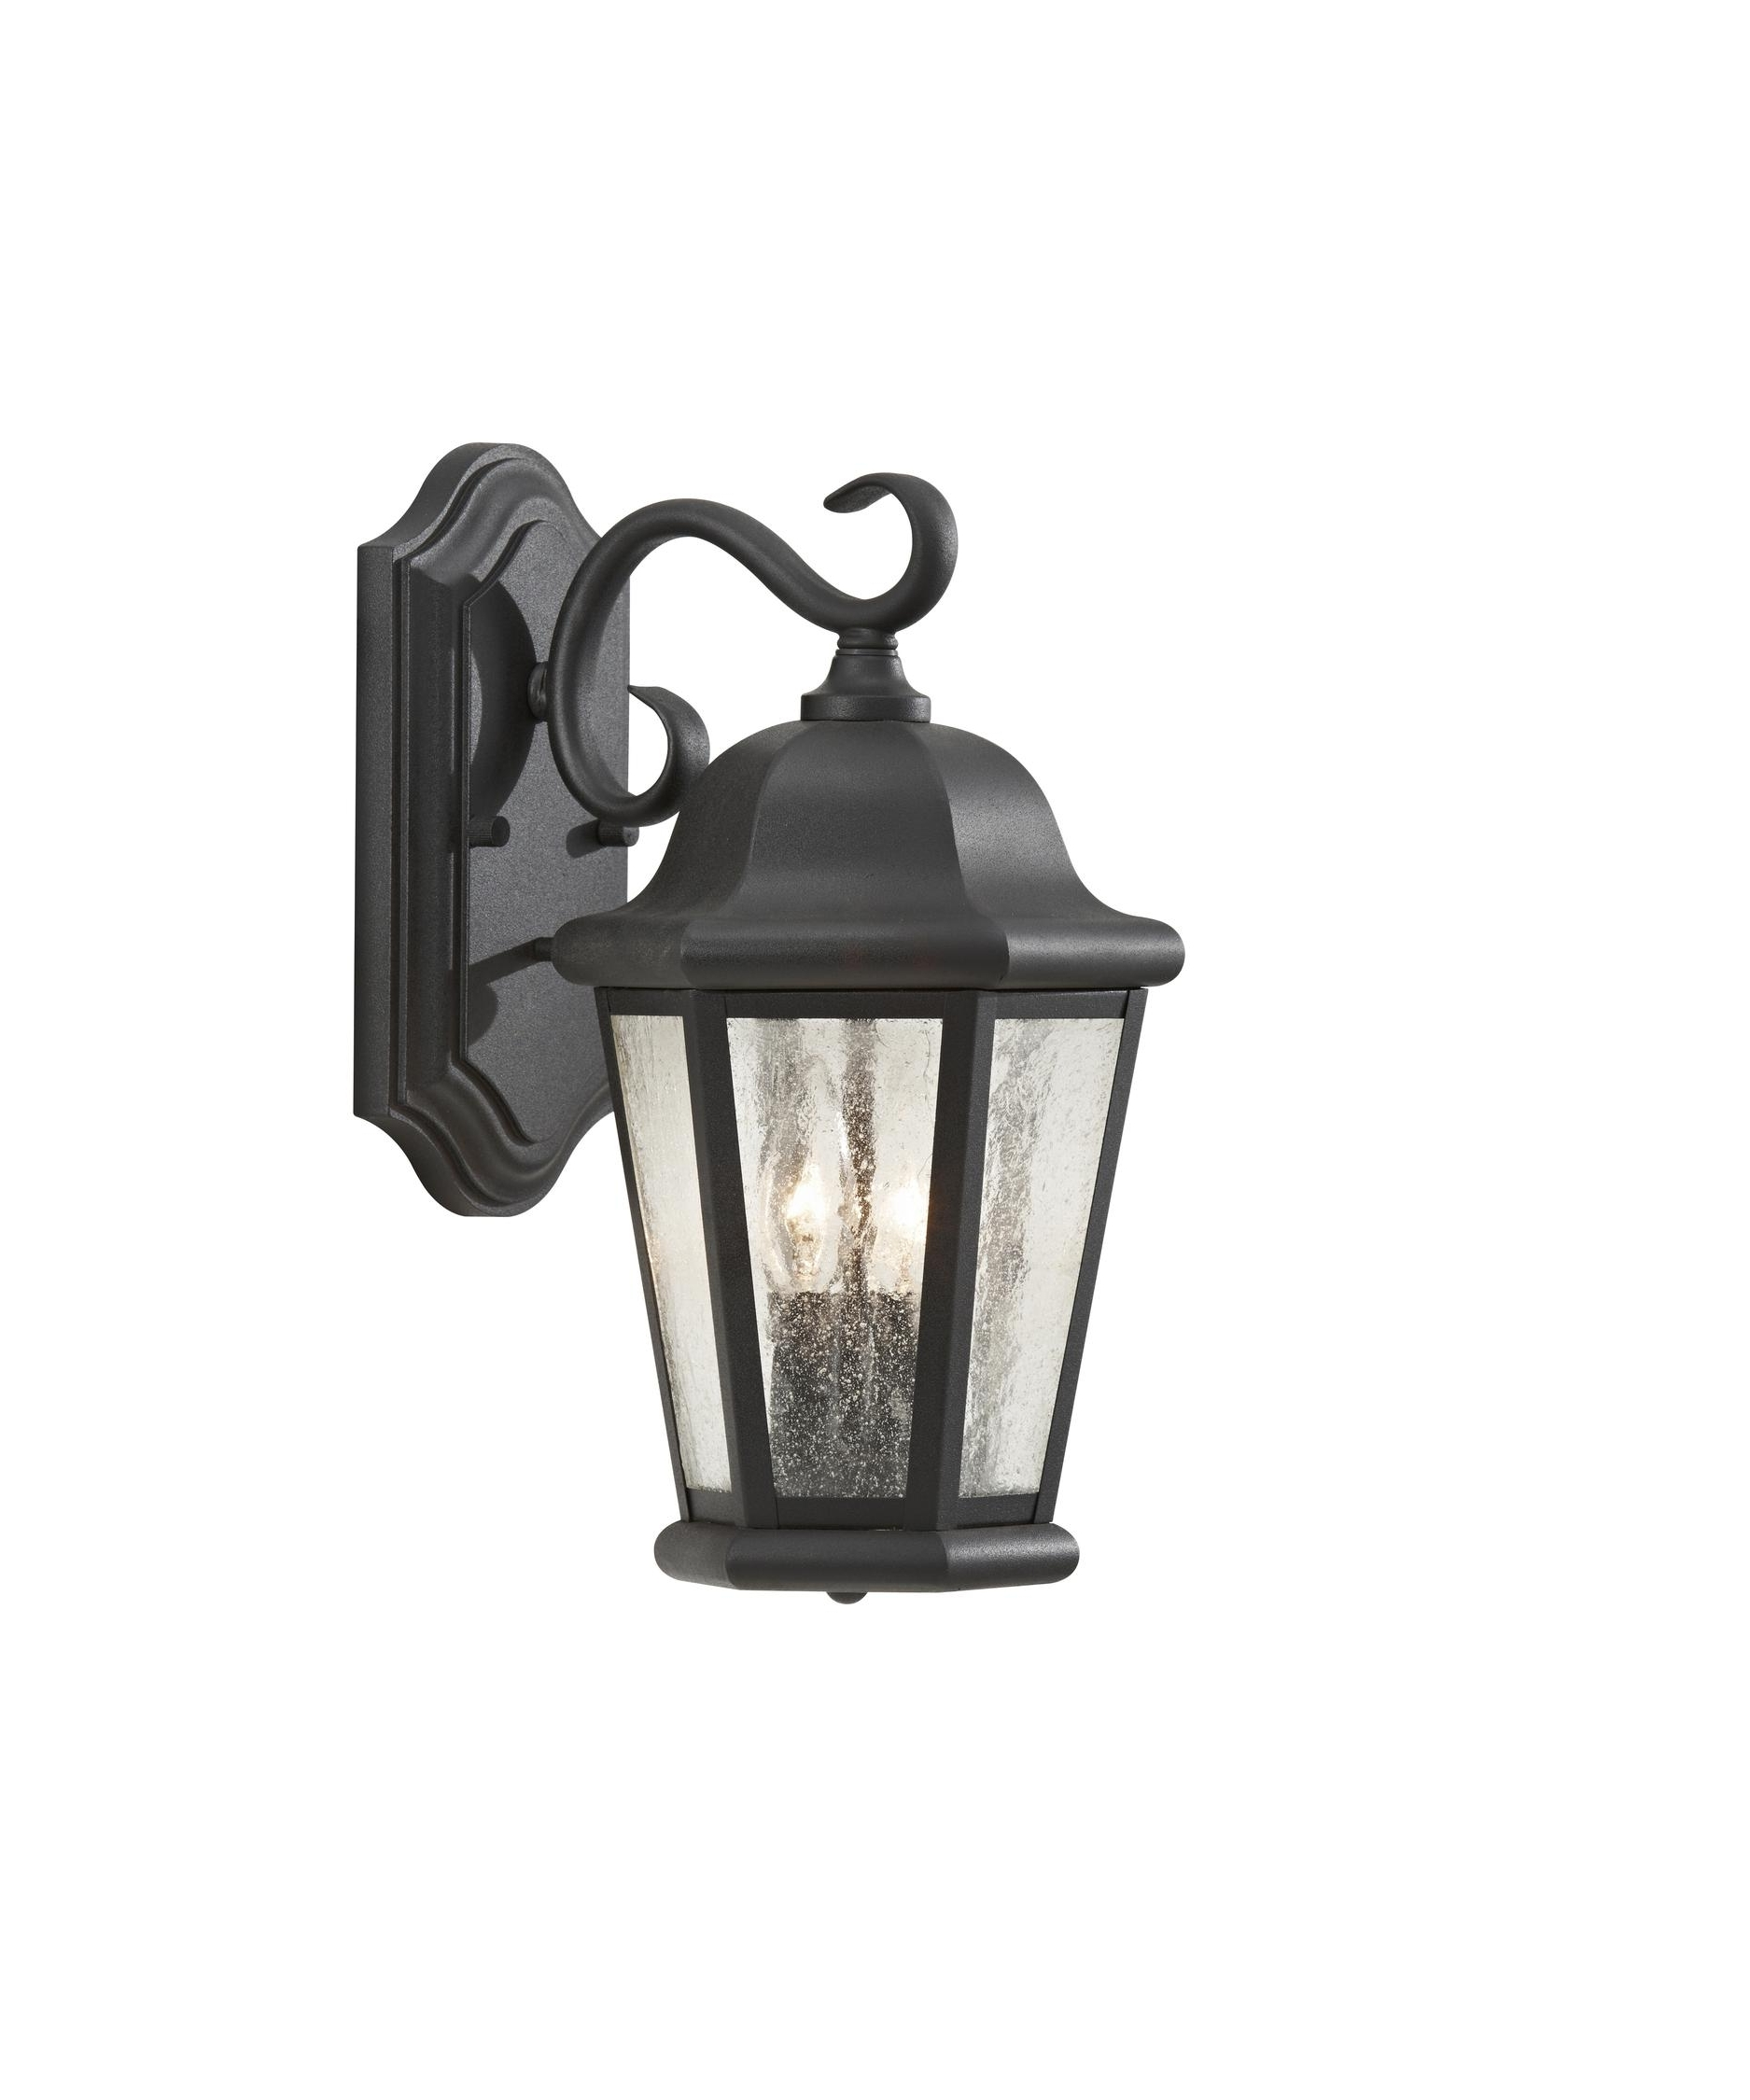 Outdoor Wall Lighting With Seeded Glass For Most Popular Murray Feiss Ol5901 Martinsville 15 Inch Wide 2 Light Outdoor Wall (View 11 of 20)